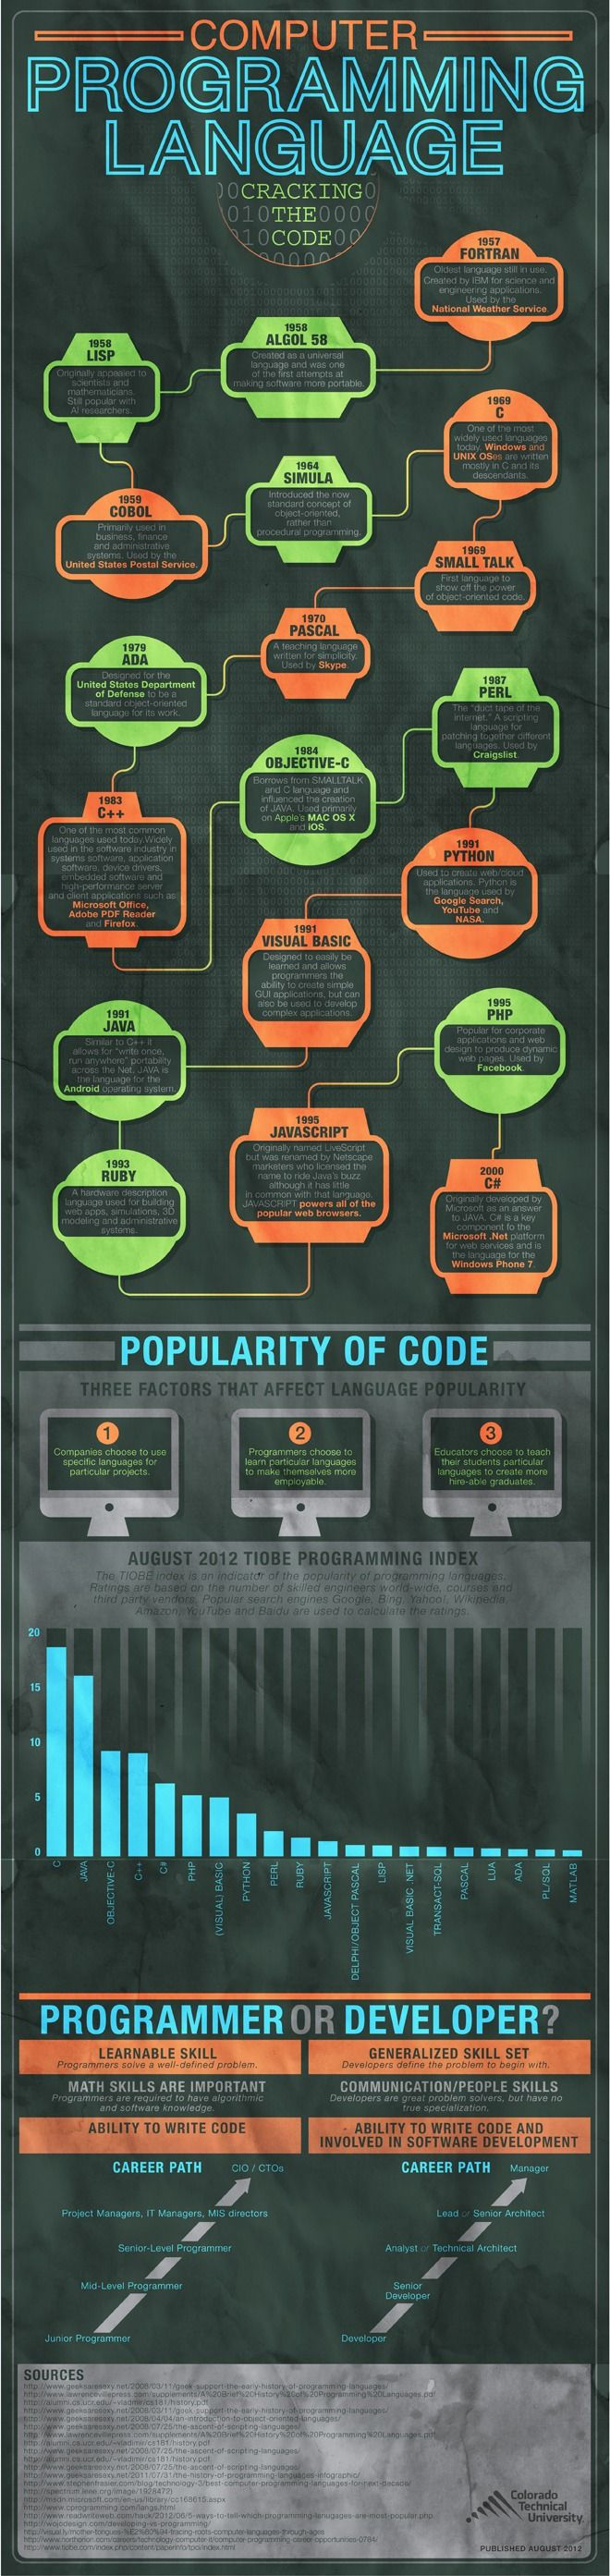 Computer Programming Languages Infographic Repinned By Www Blickedeeler De Computer Programming Languages Computer Programming Educational Infographic